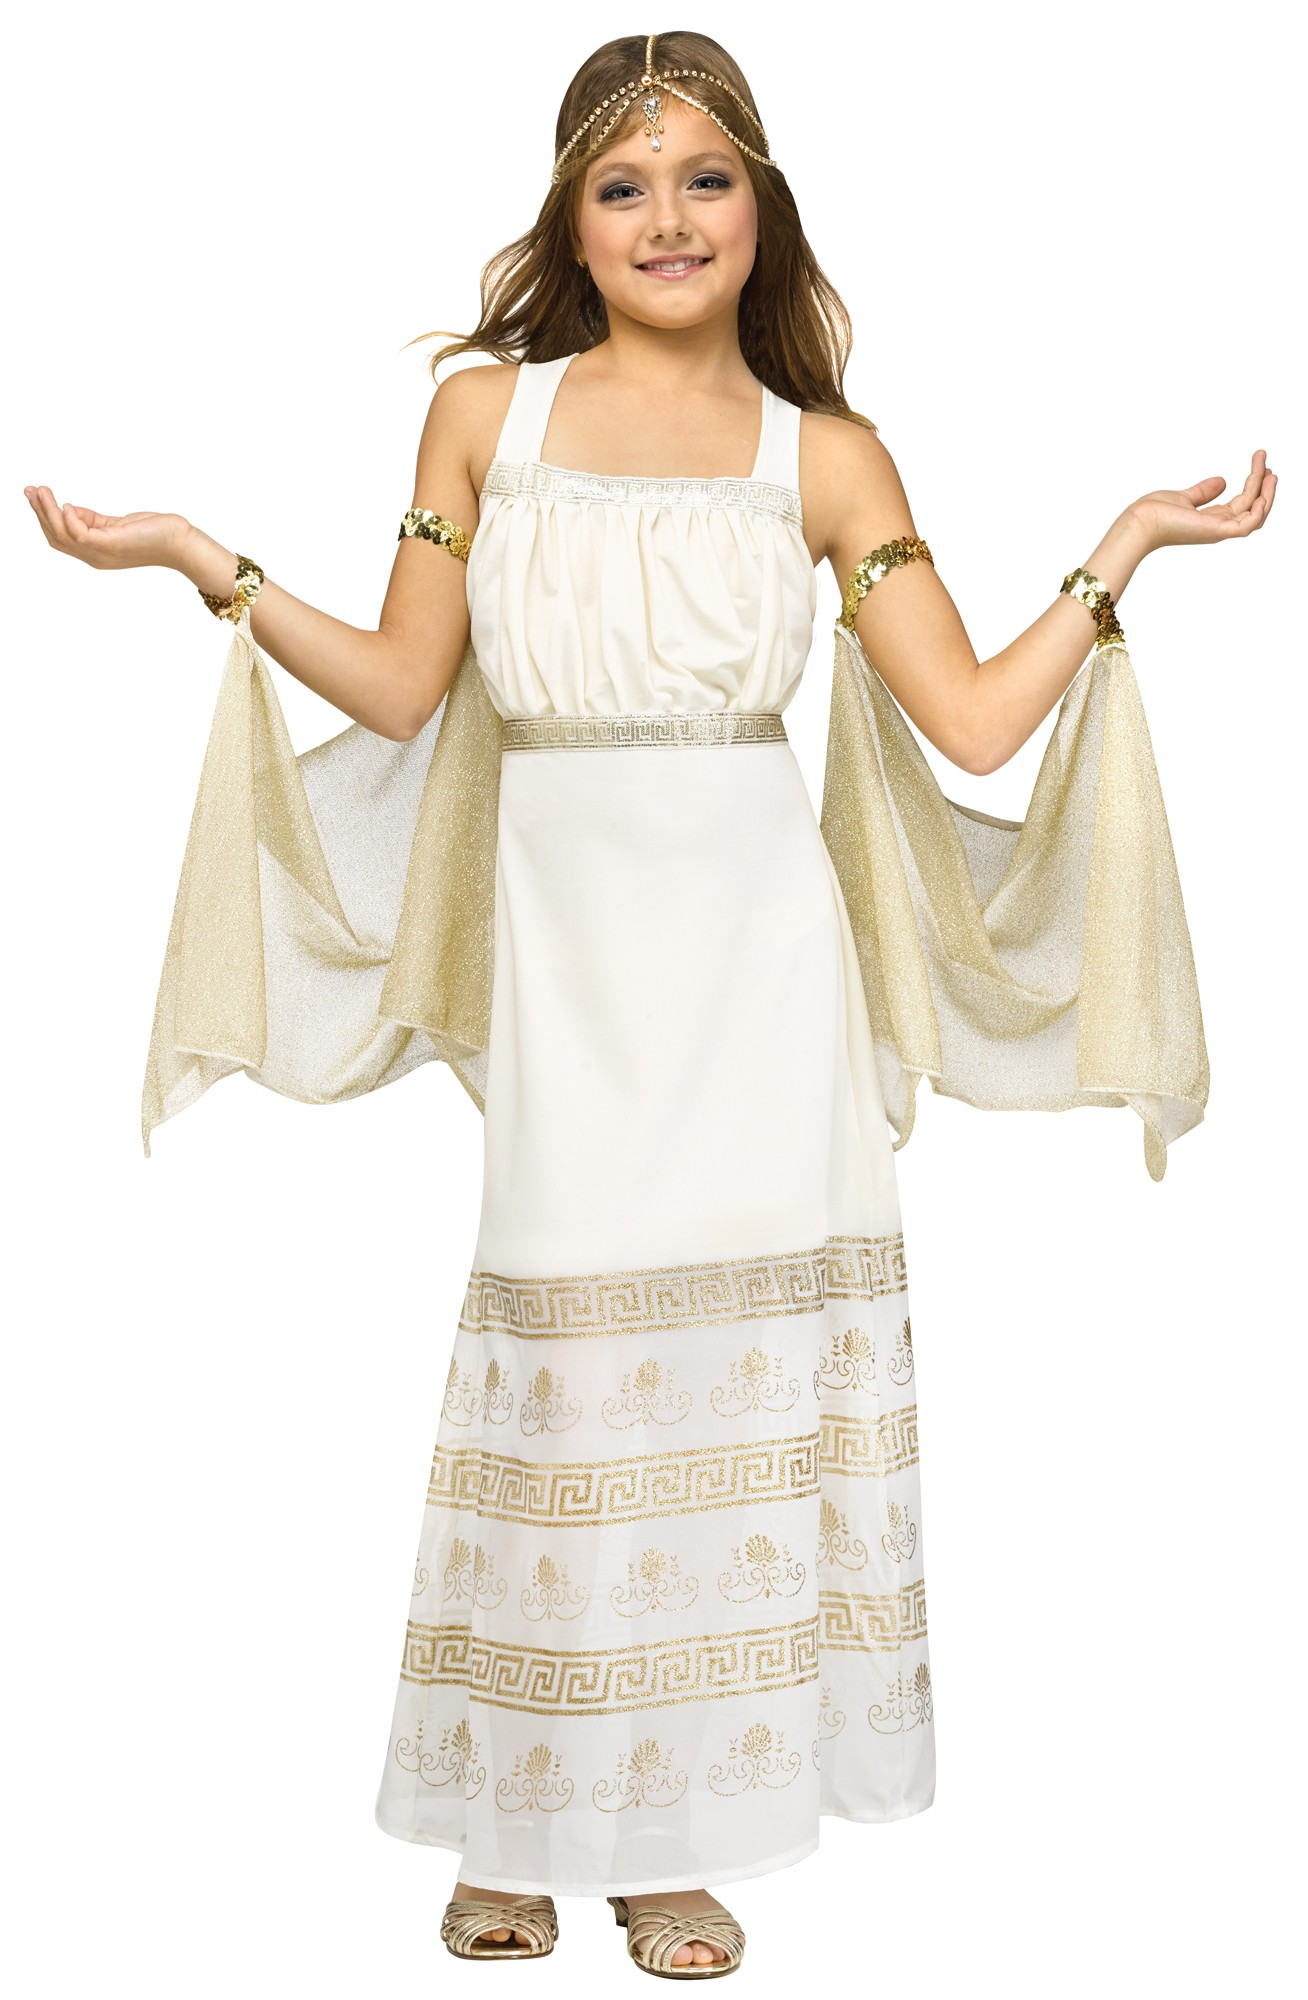 Golden Goddess Halloween Costume Girls Cleopatra Roman Gown Princess New